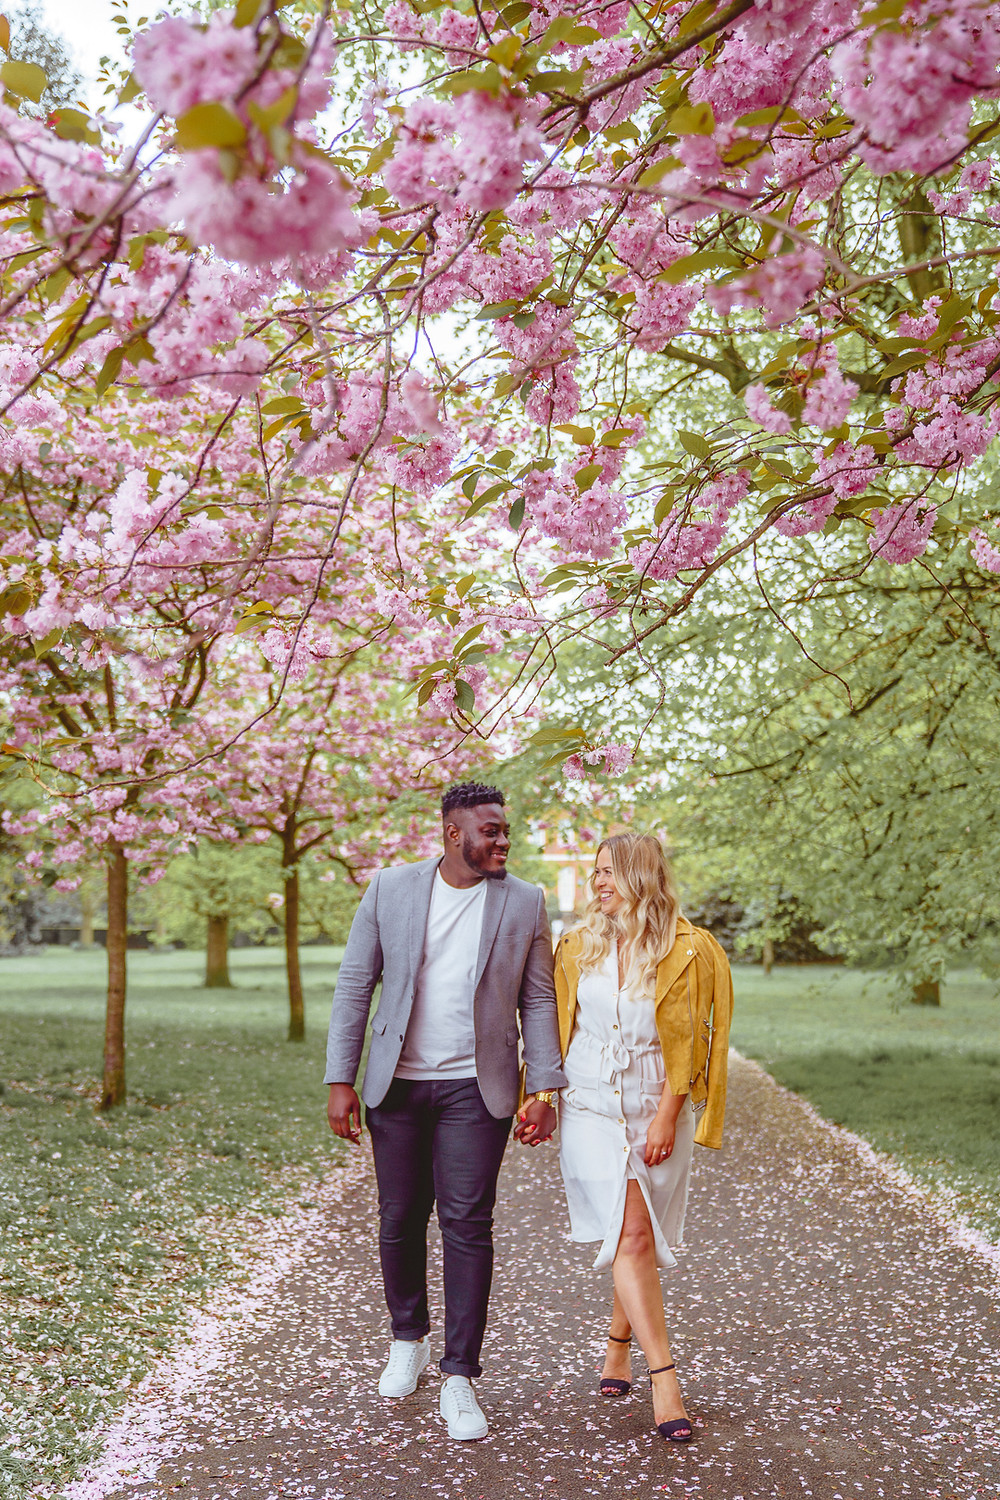 Greenwich Park Spring Blossom Engagement Shoot